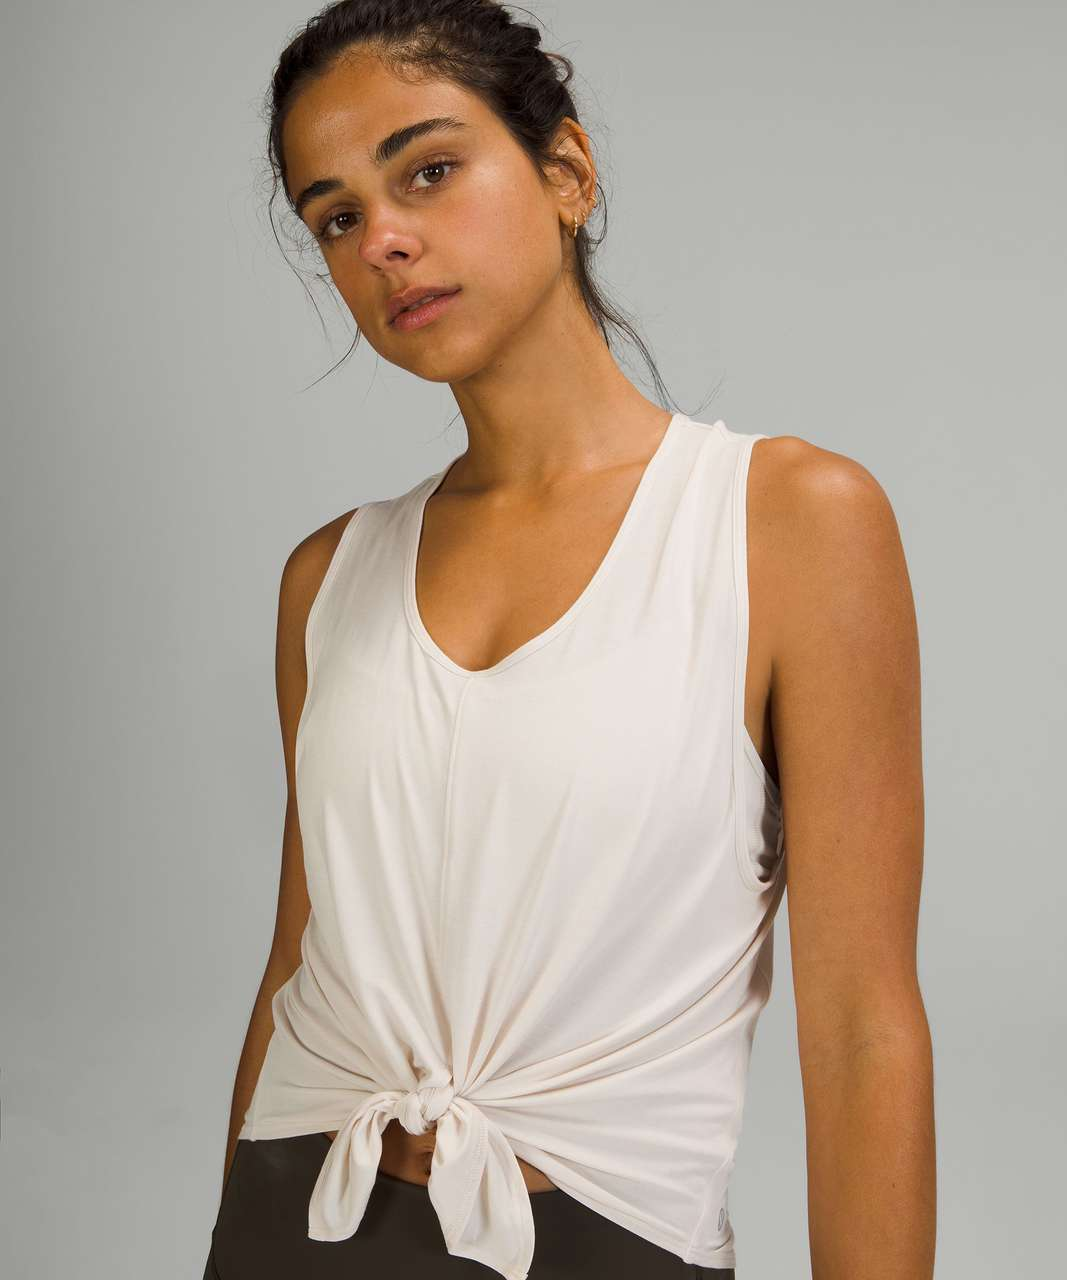 Lululemon Flow Y 2-in-1 Yoga Tank Top *Light Support, A–C Cups - White Opal